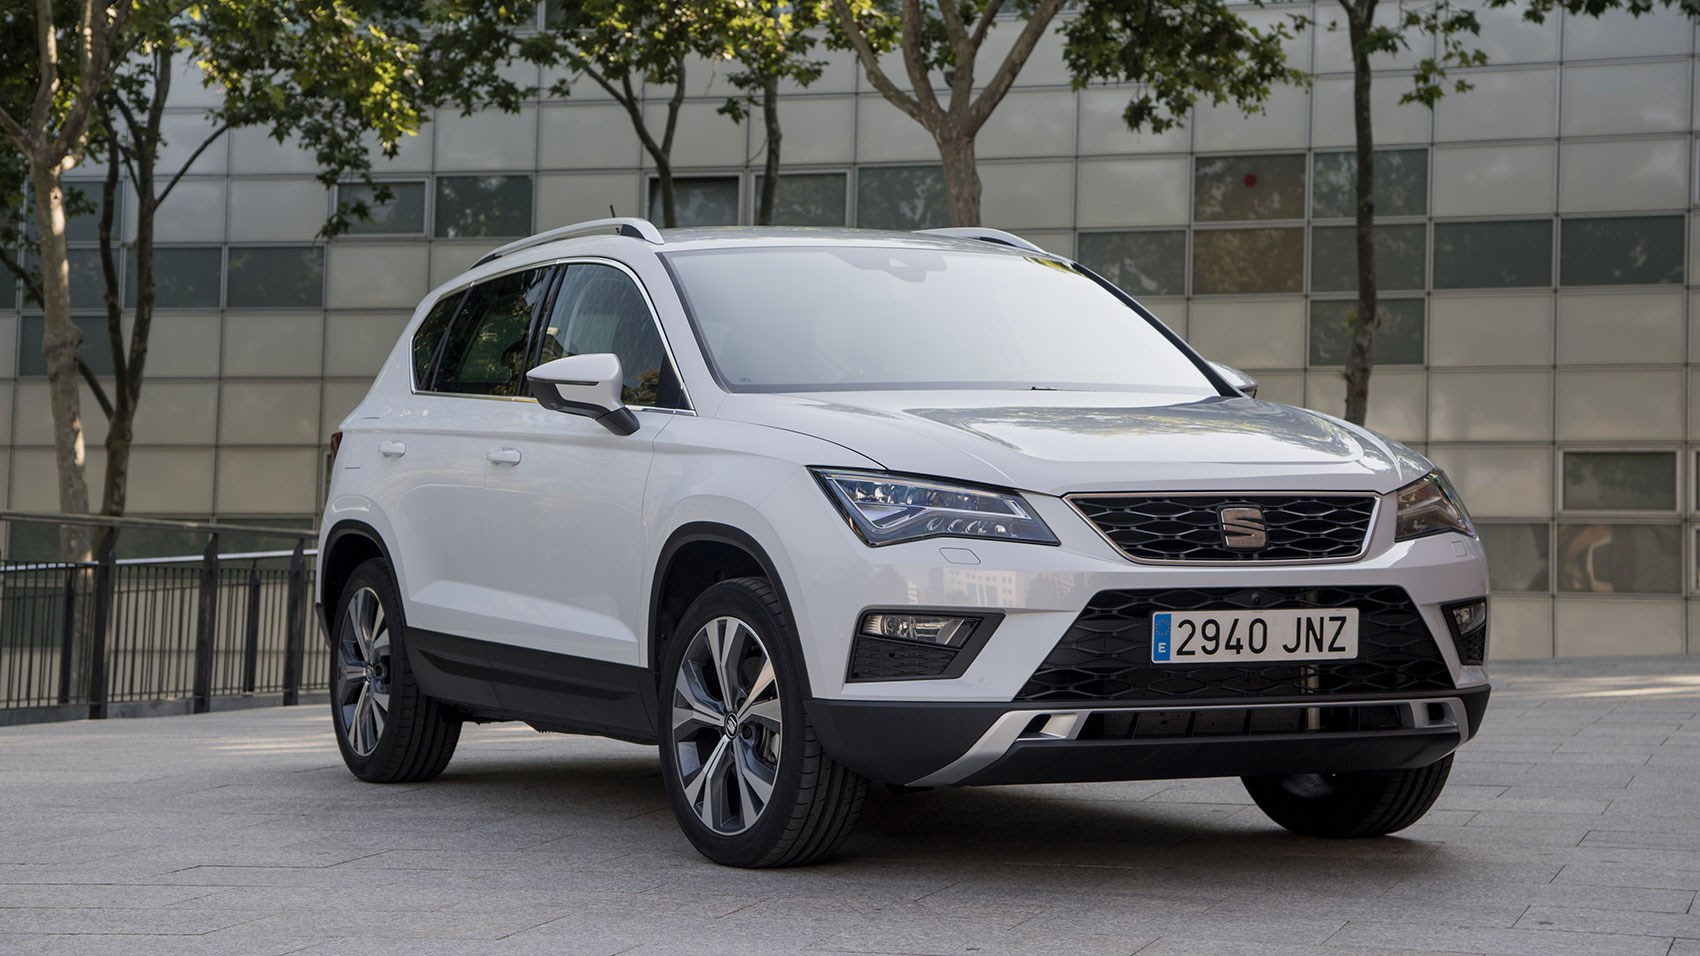 Kuga Dimensions >> Seat Ateca 1.4 TSI Xcellence (2016) review | CAR Magazine